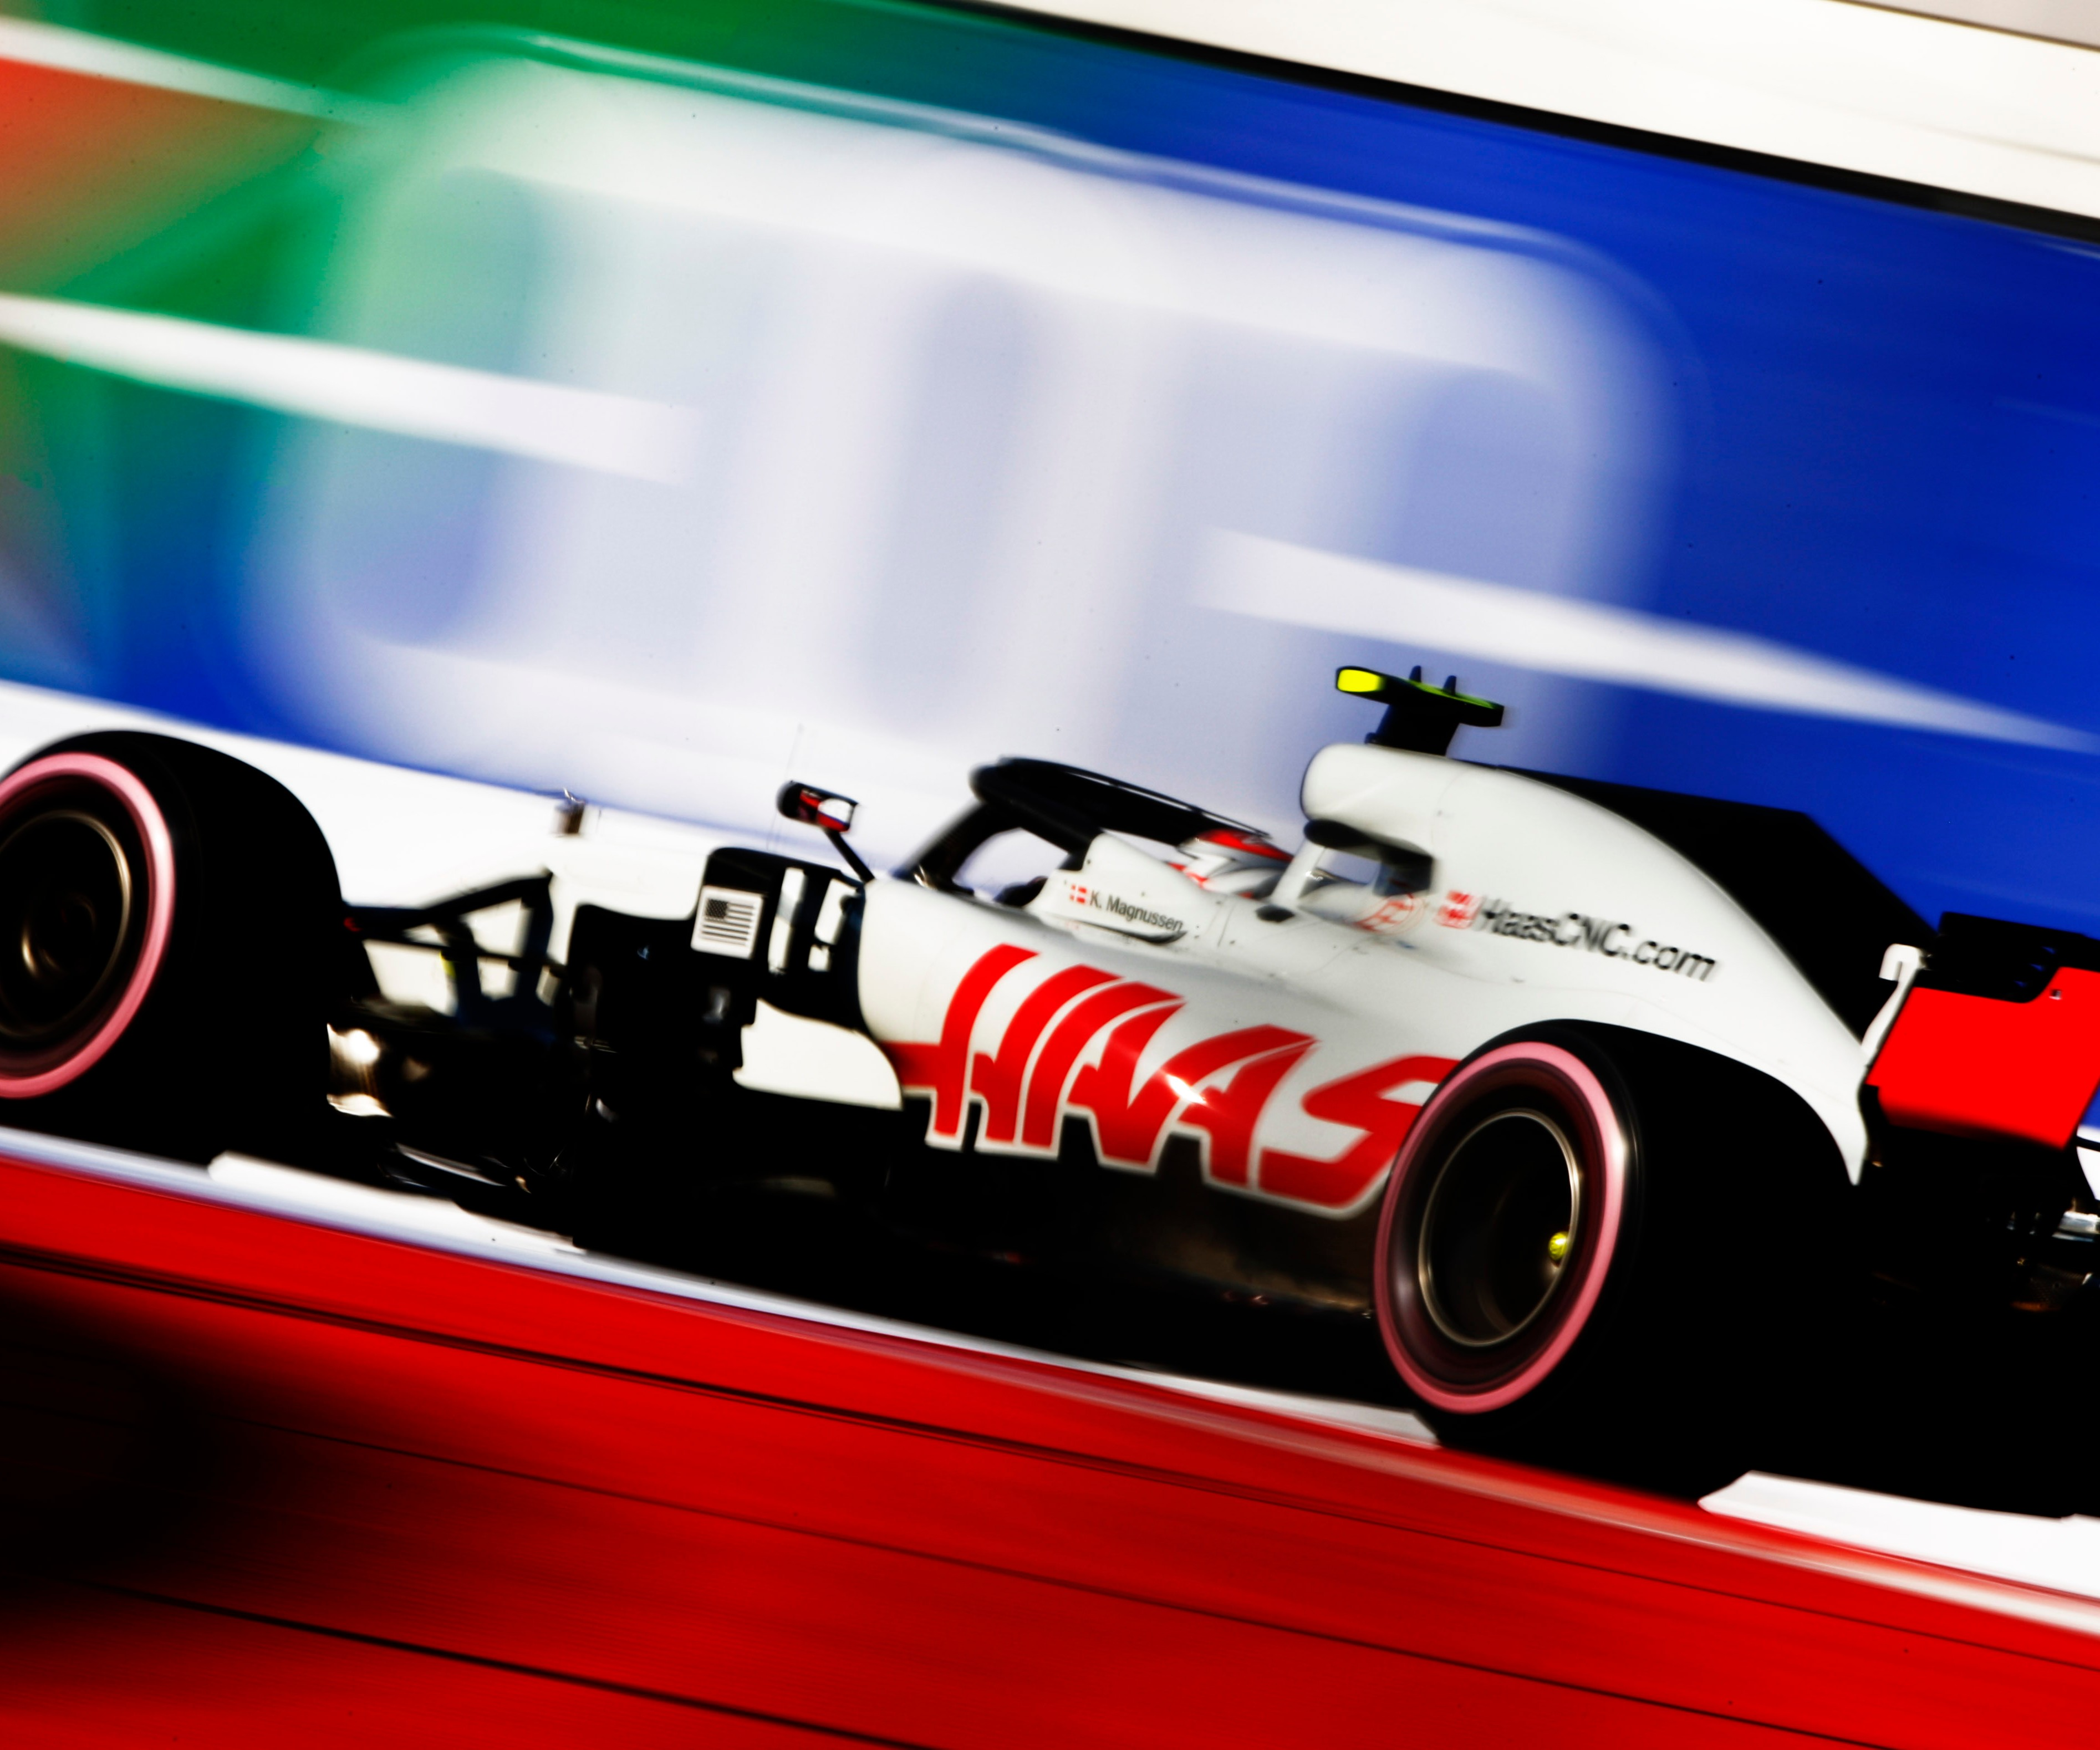 CAMplete and Haas F1 Team